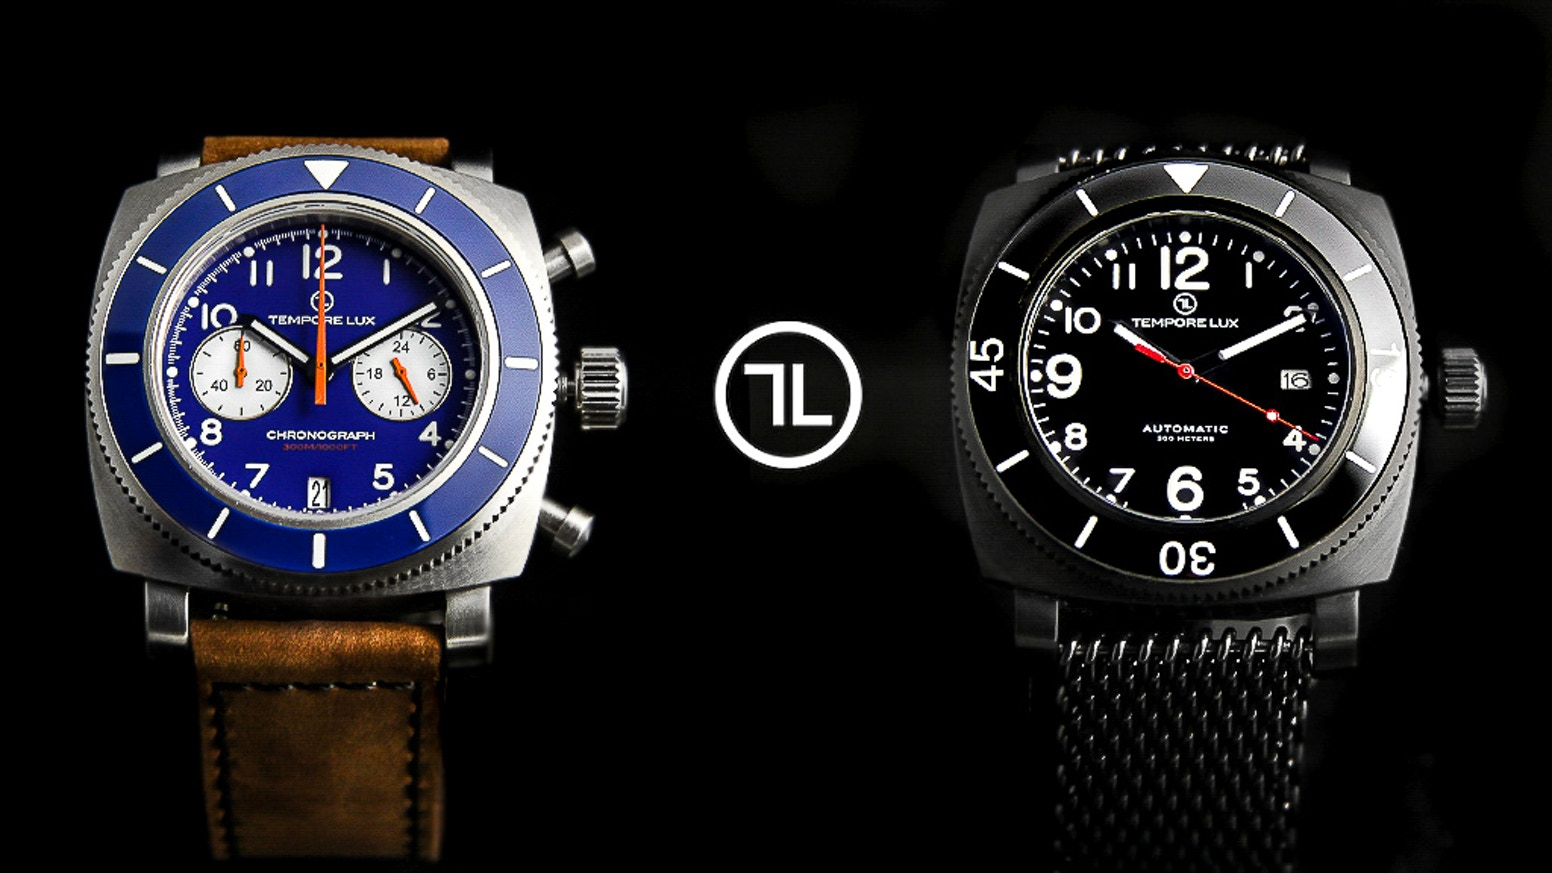 Inspired by the vintage diver watches, Tempore Lux watches are also delightfully modern, elegant and of exceptional quality. Now available in our new ecommerce. Click on the red button.